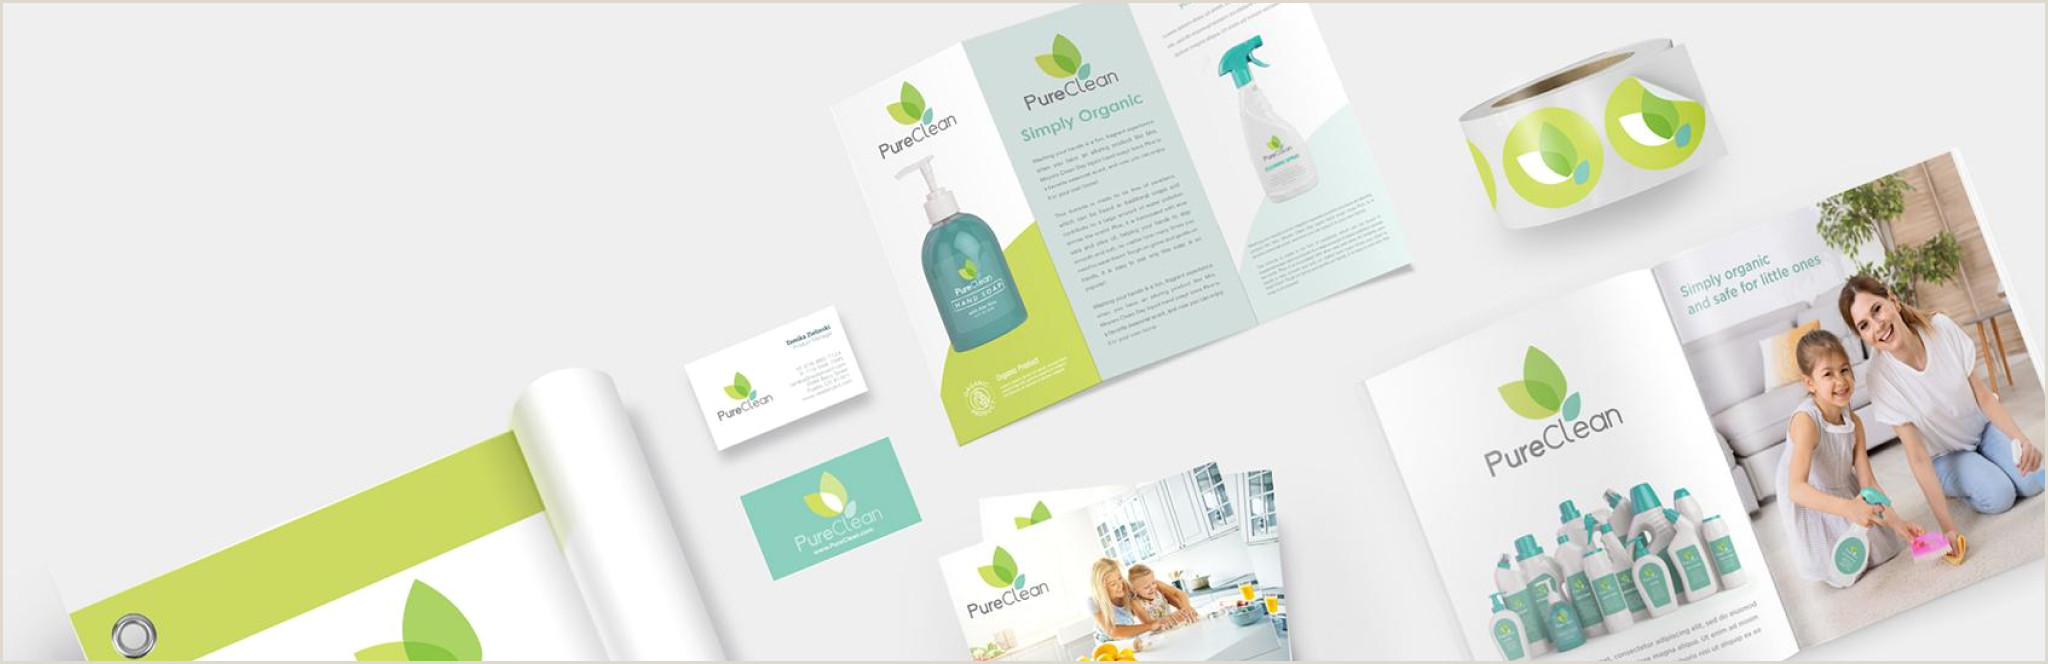 How Do You Make Business Cards Printplace High Quality Line Printing Services